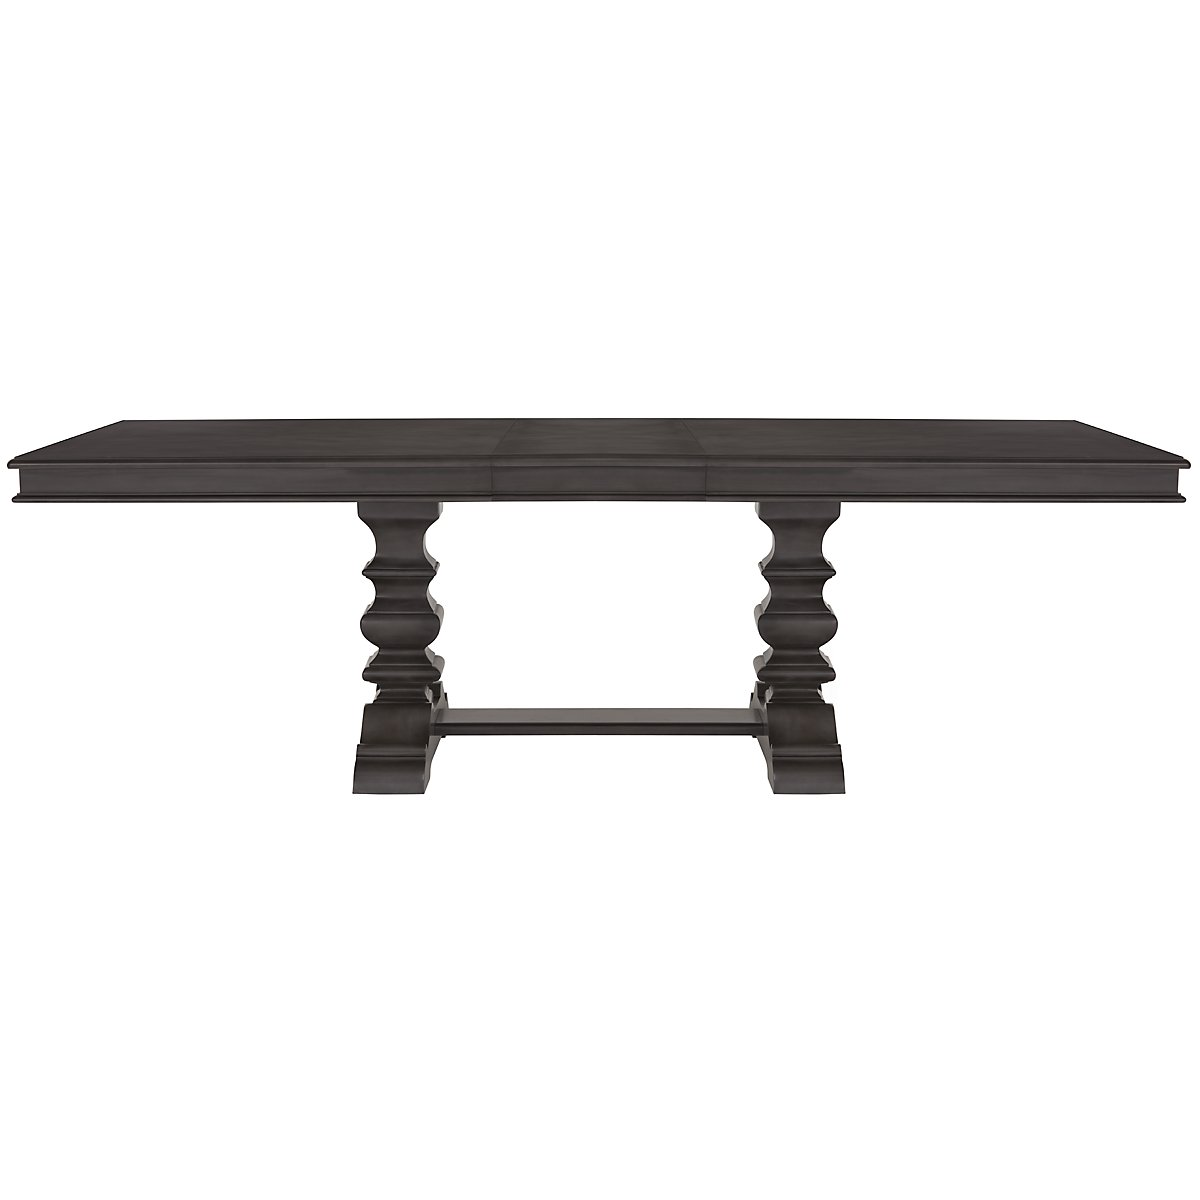 Emerson Gray Trestle Table